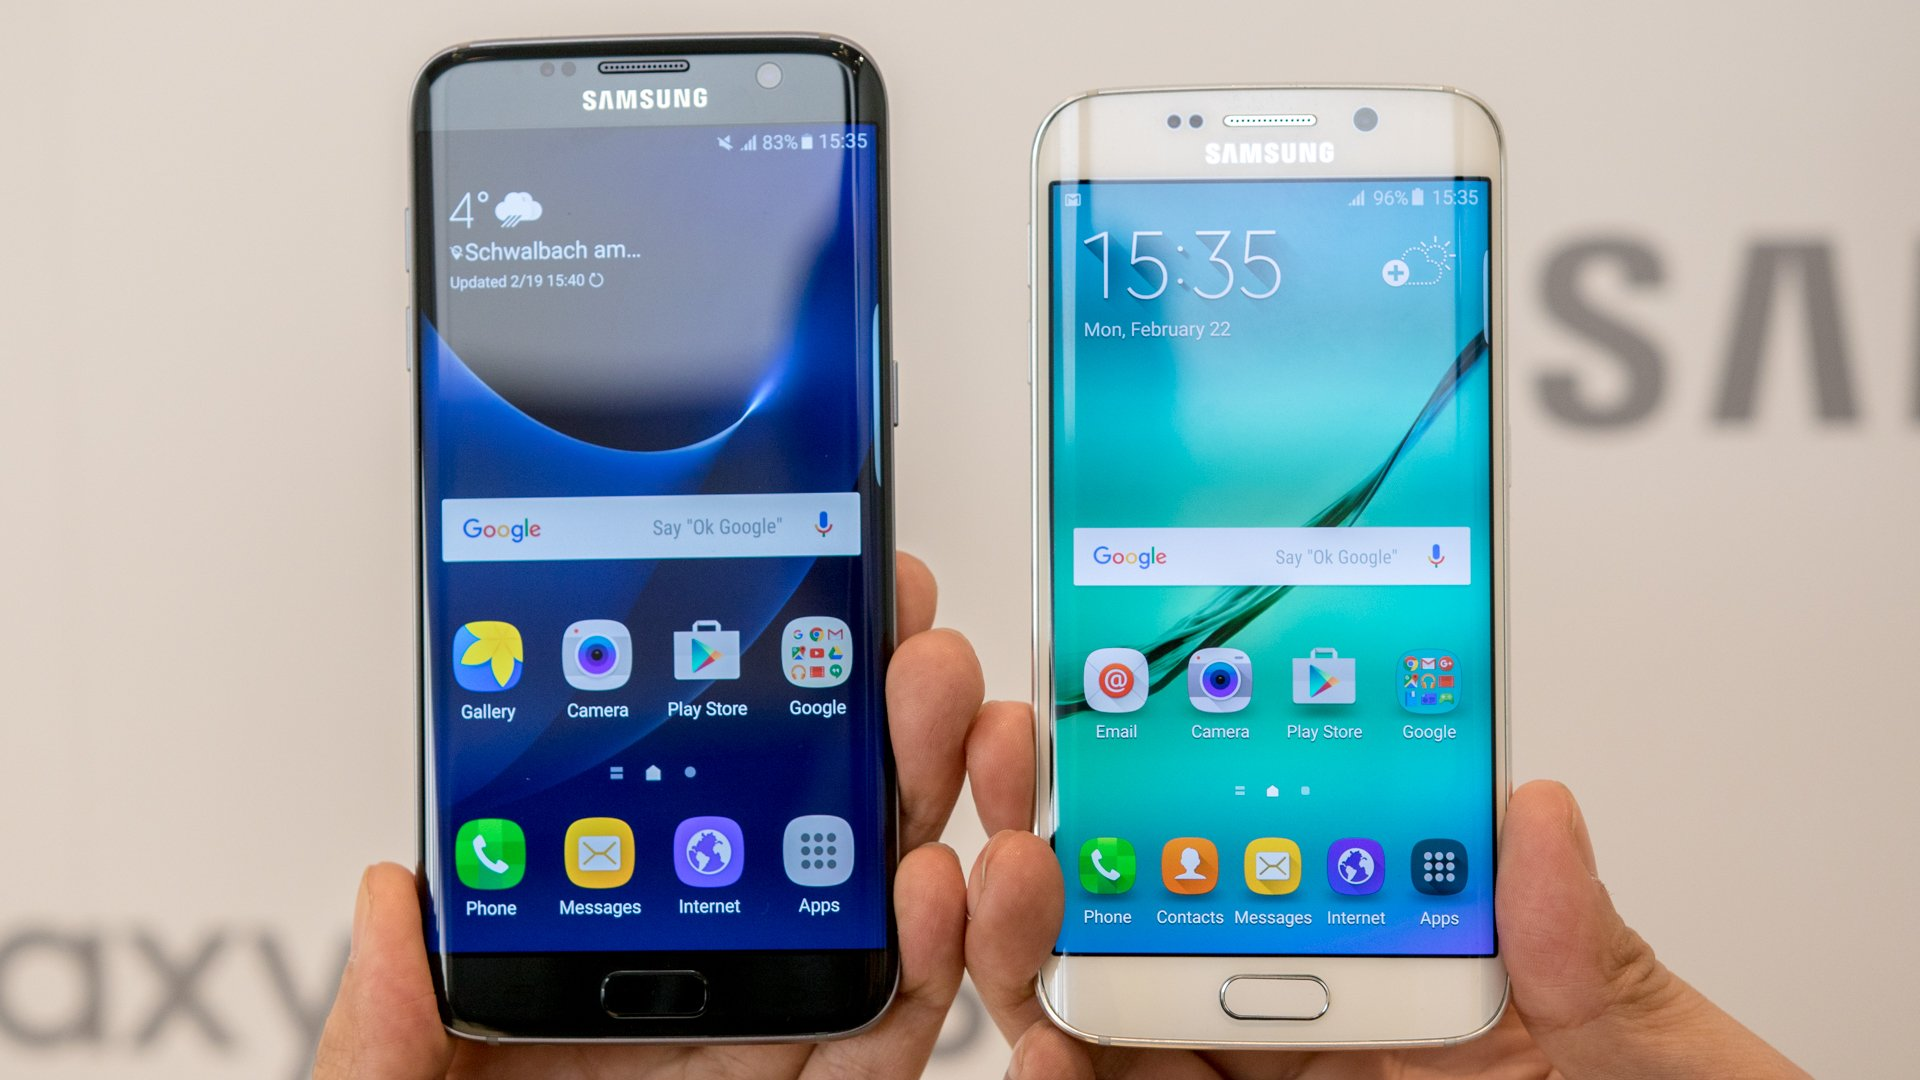 samsung-galaxy-s6-edge-vs-samsung-galaxy-s7-edge-1